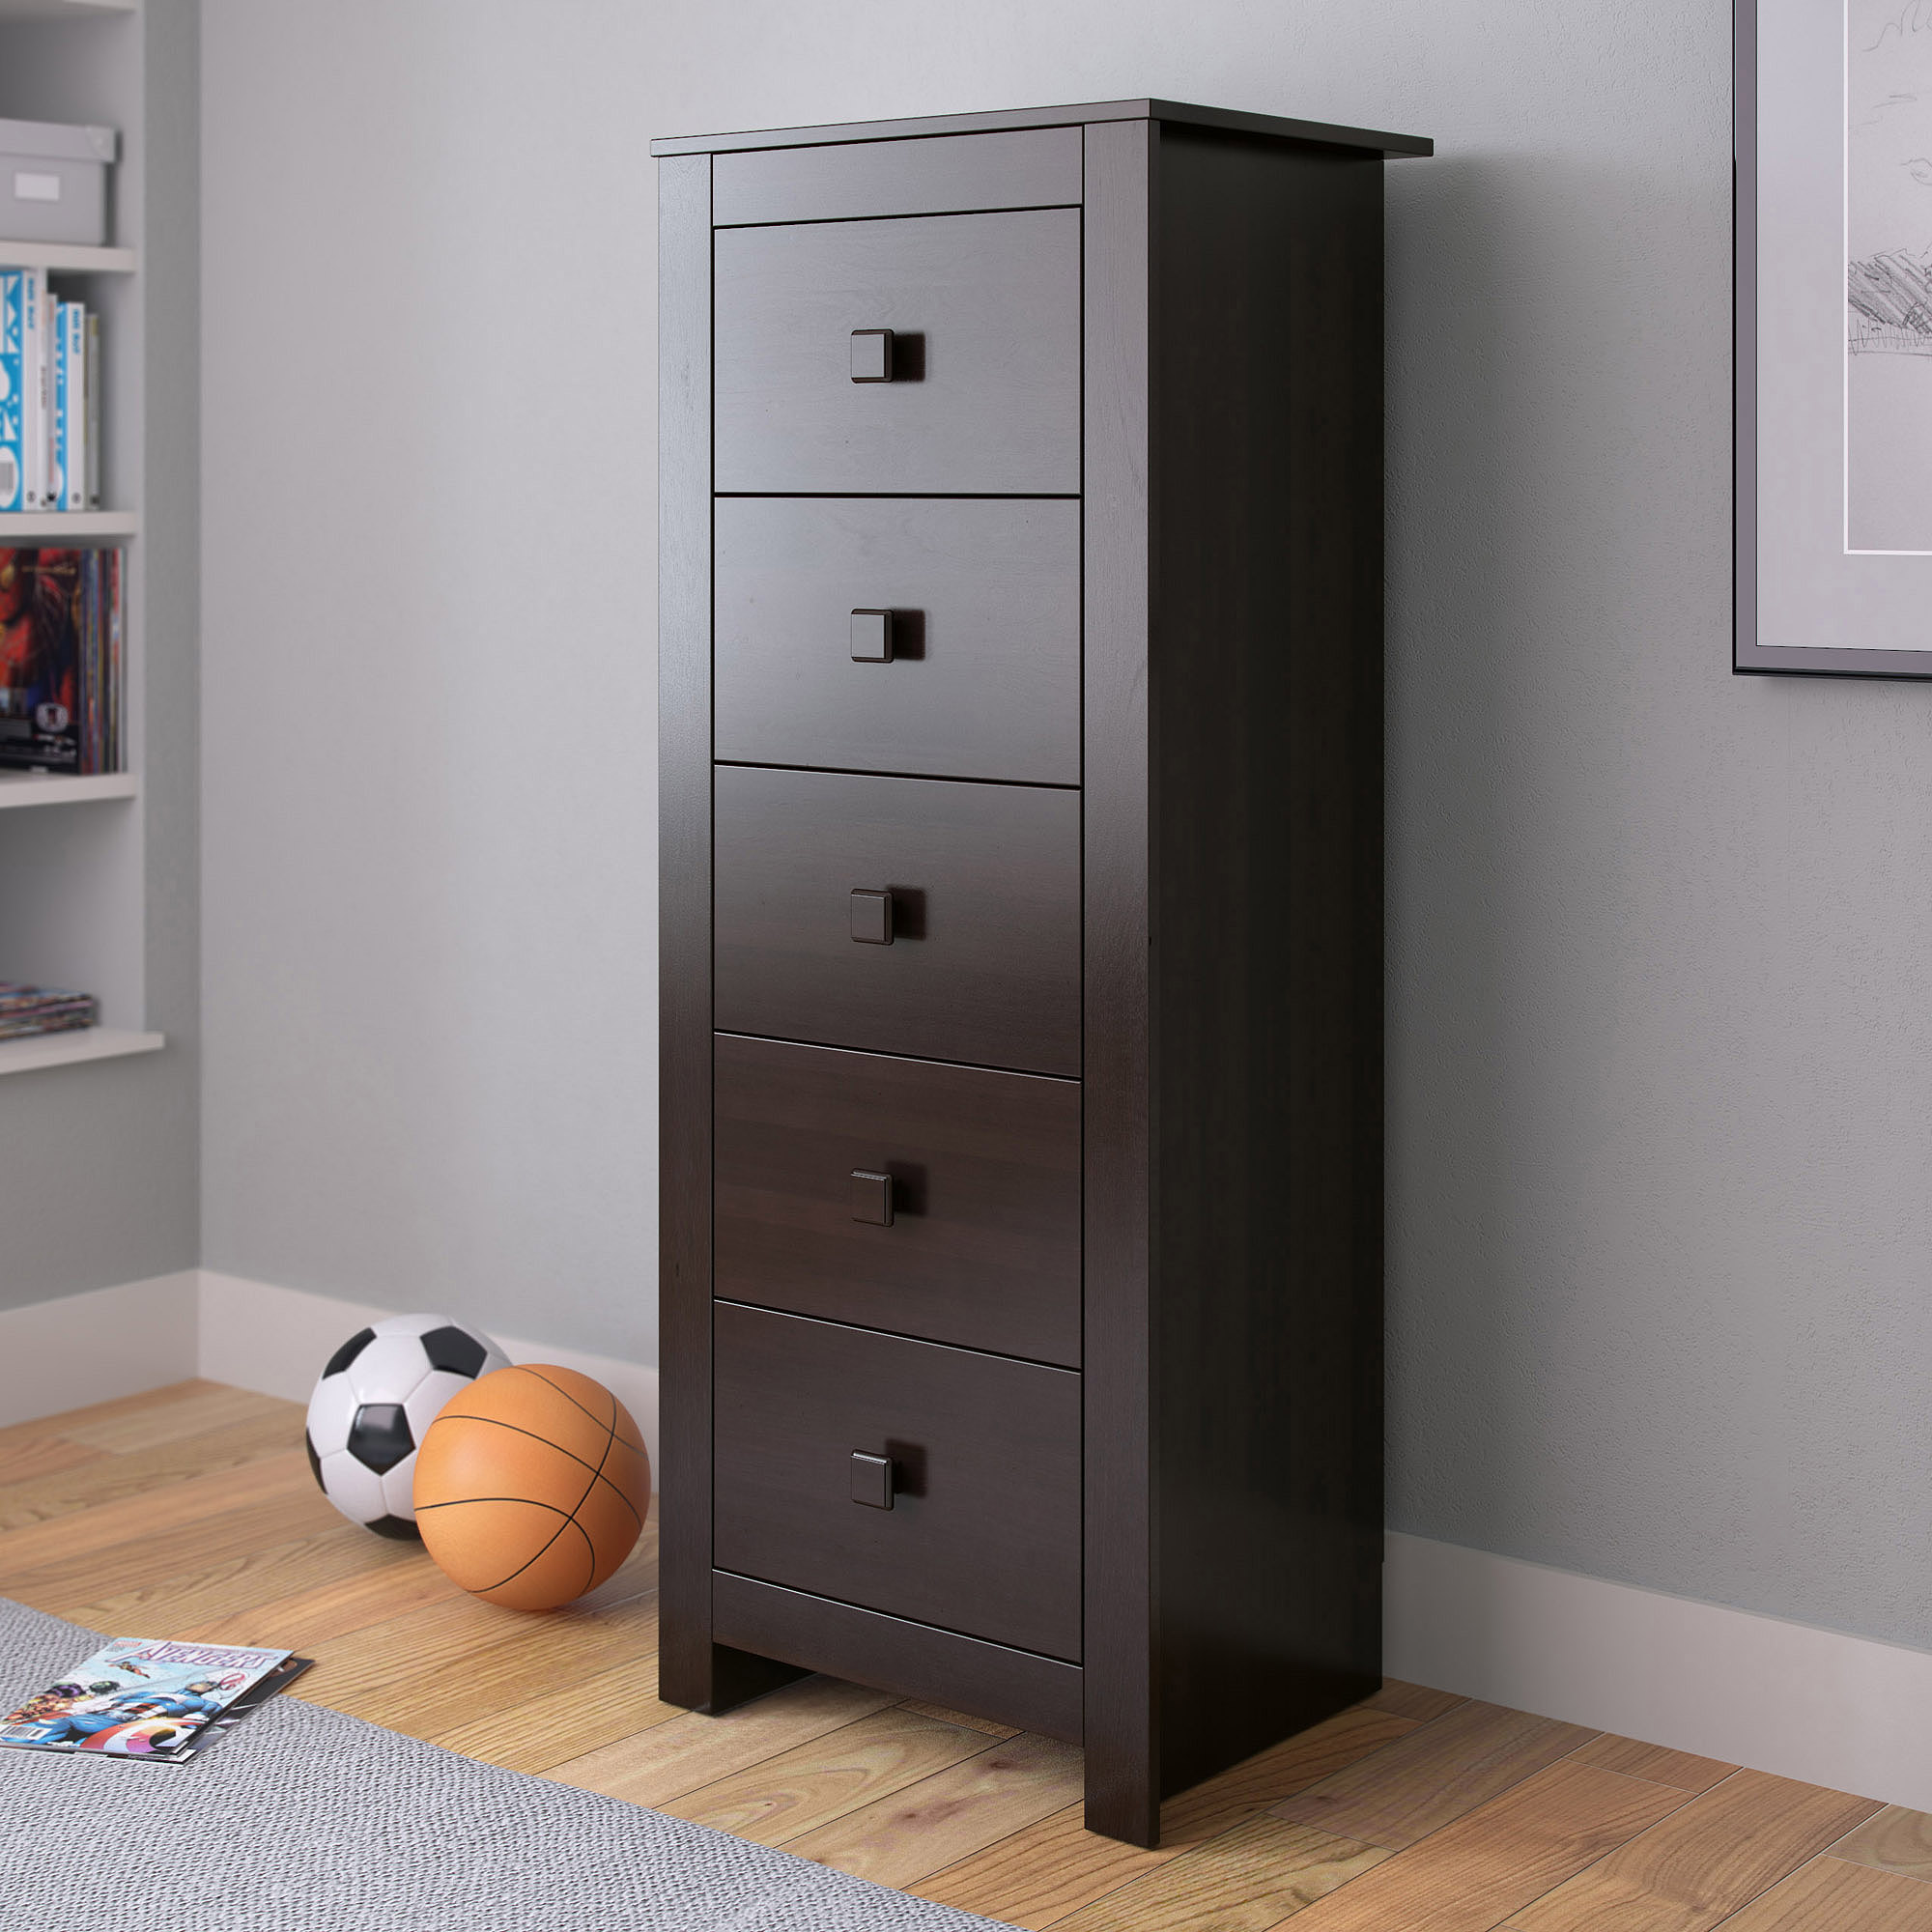 CorLiving Madison Tall Boy Chest of Drawers  Multiple Colors   Walmart com. CorLiving Madison Tall Boy Chest of Drawers  Multiple Colors